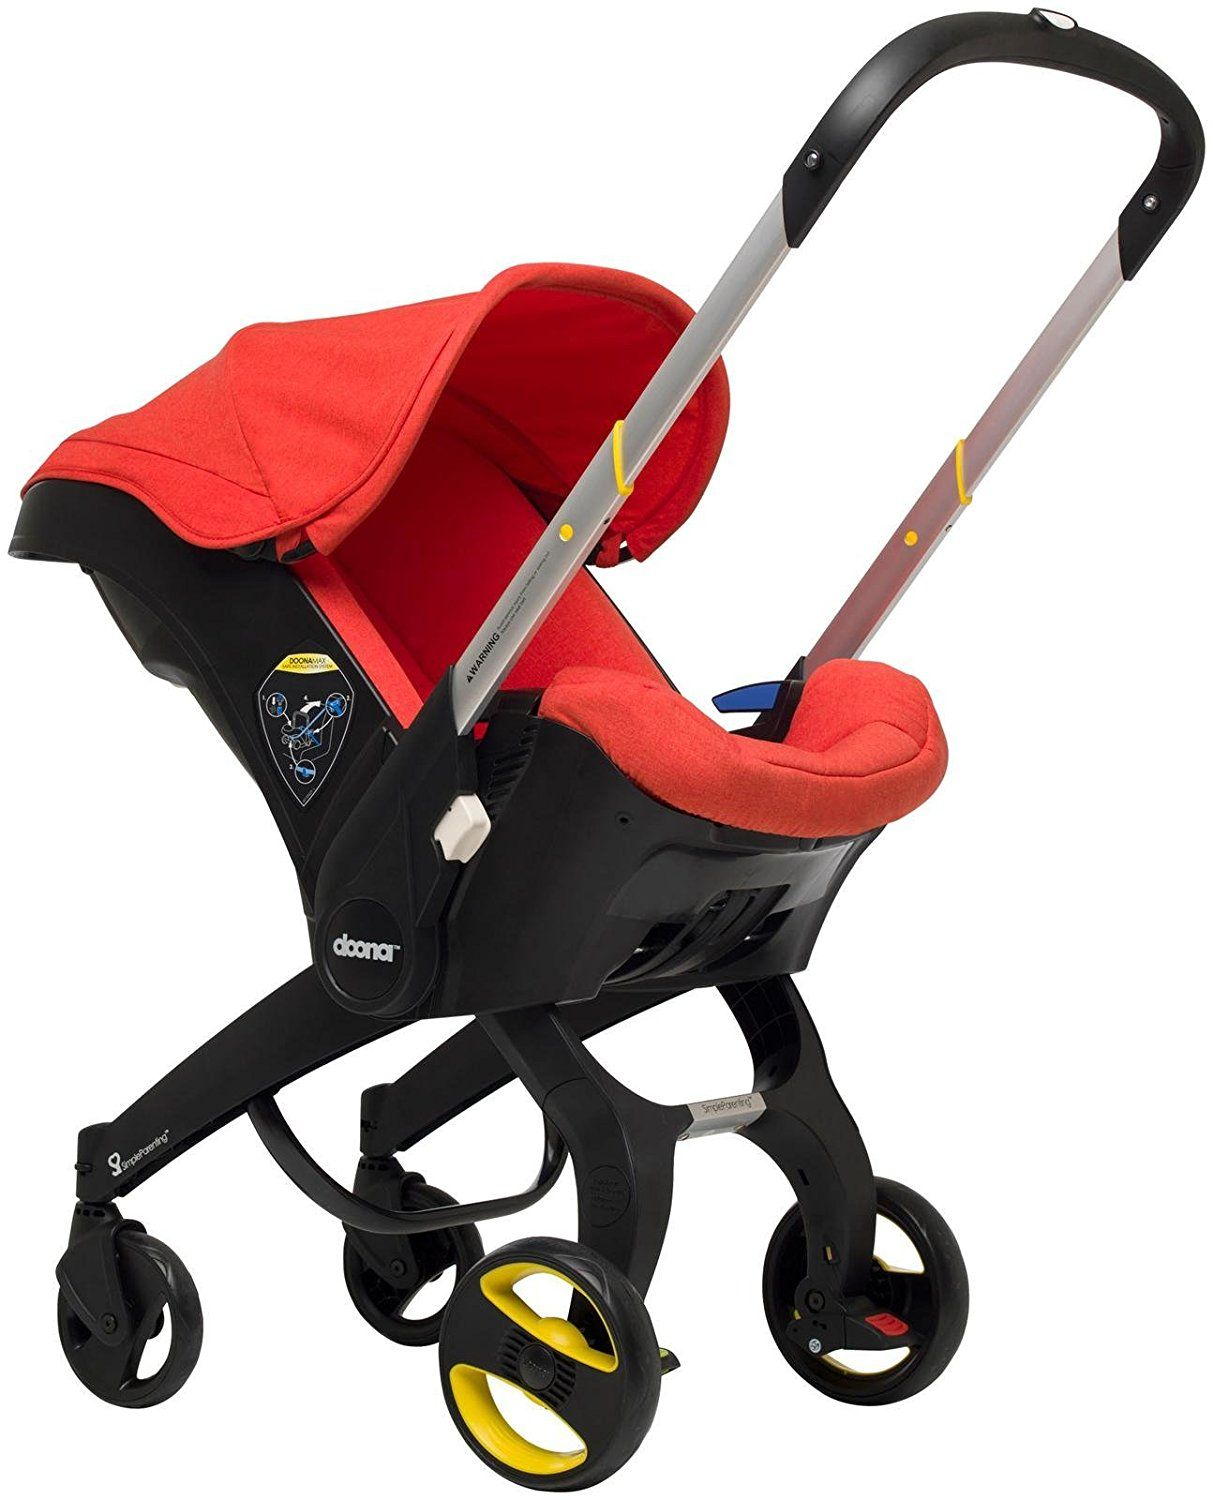 Pin de Tinypod.co en Strollers at Tinypod | Pinterest